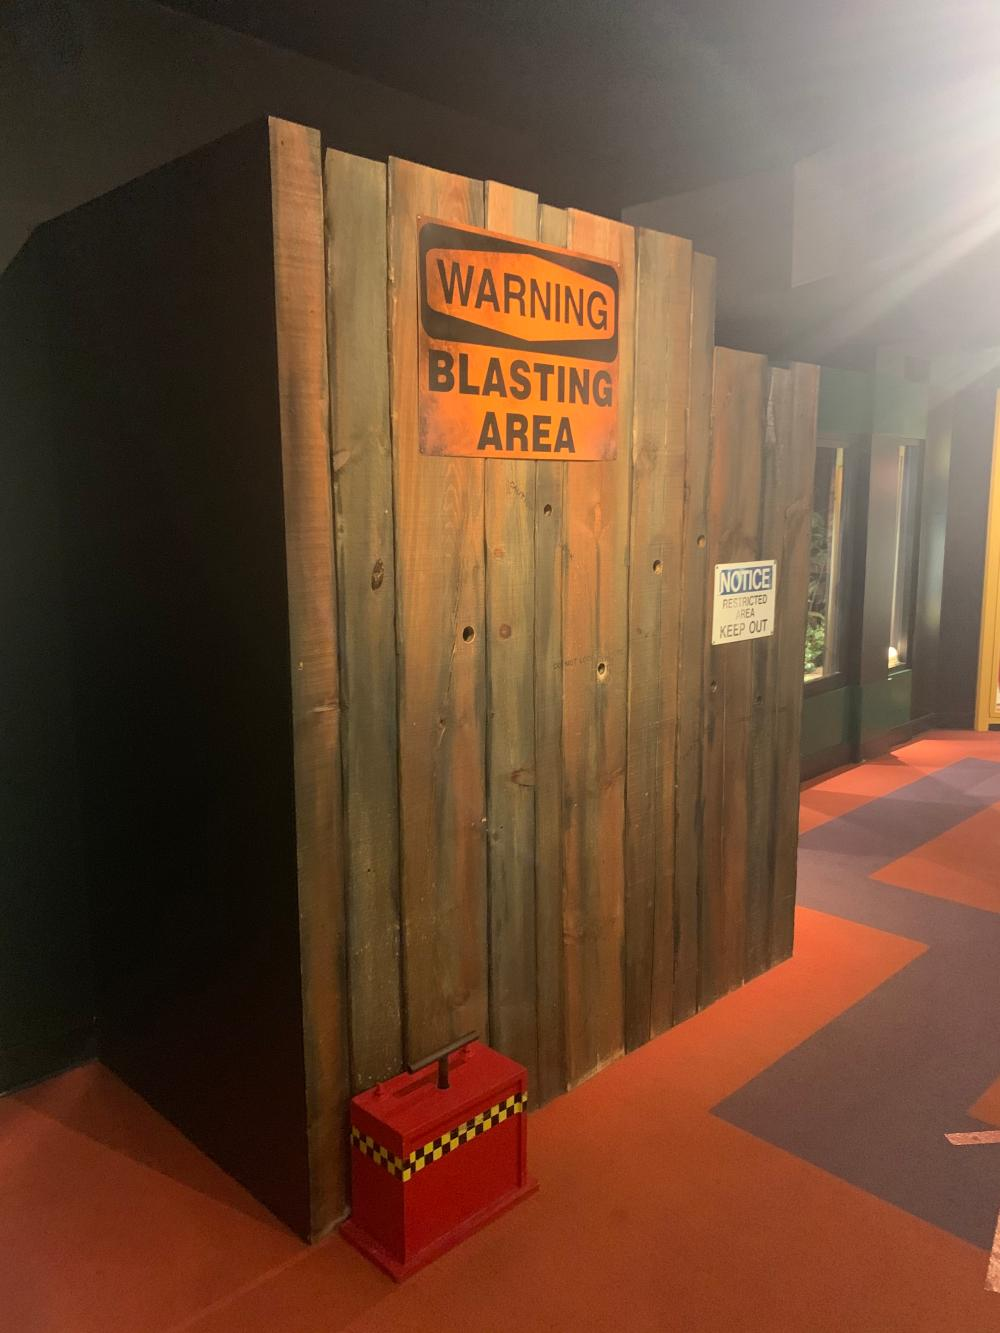 Blasting Area Warning Signs Guinness Museum Display